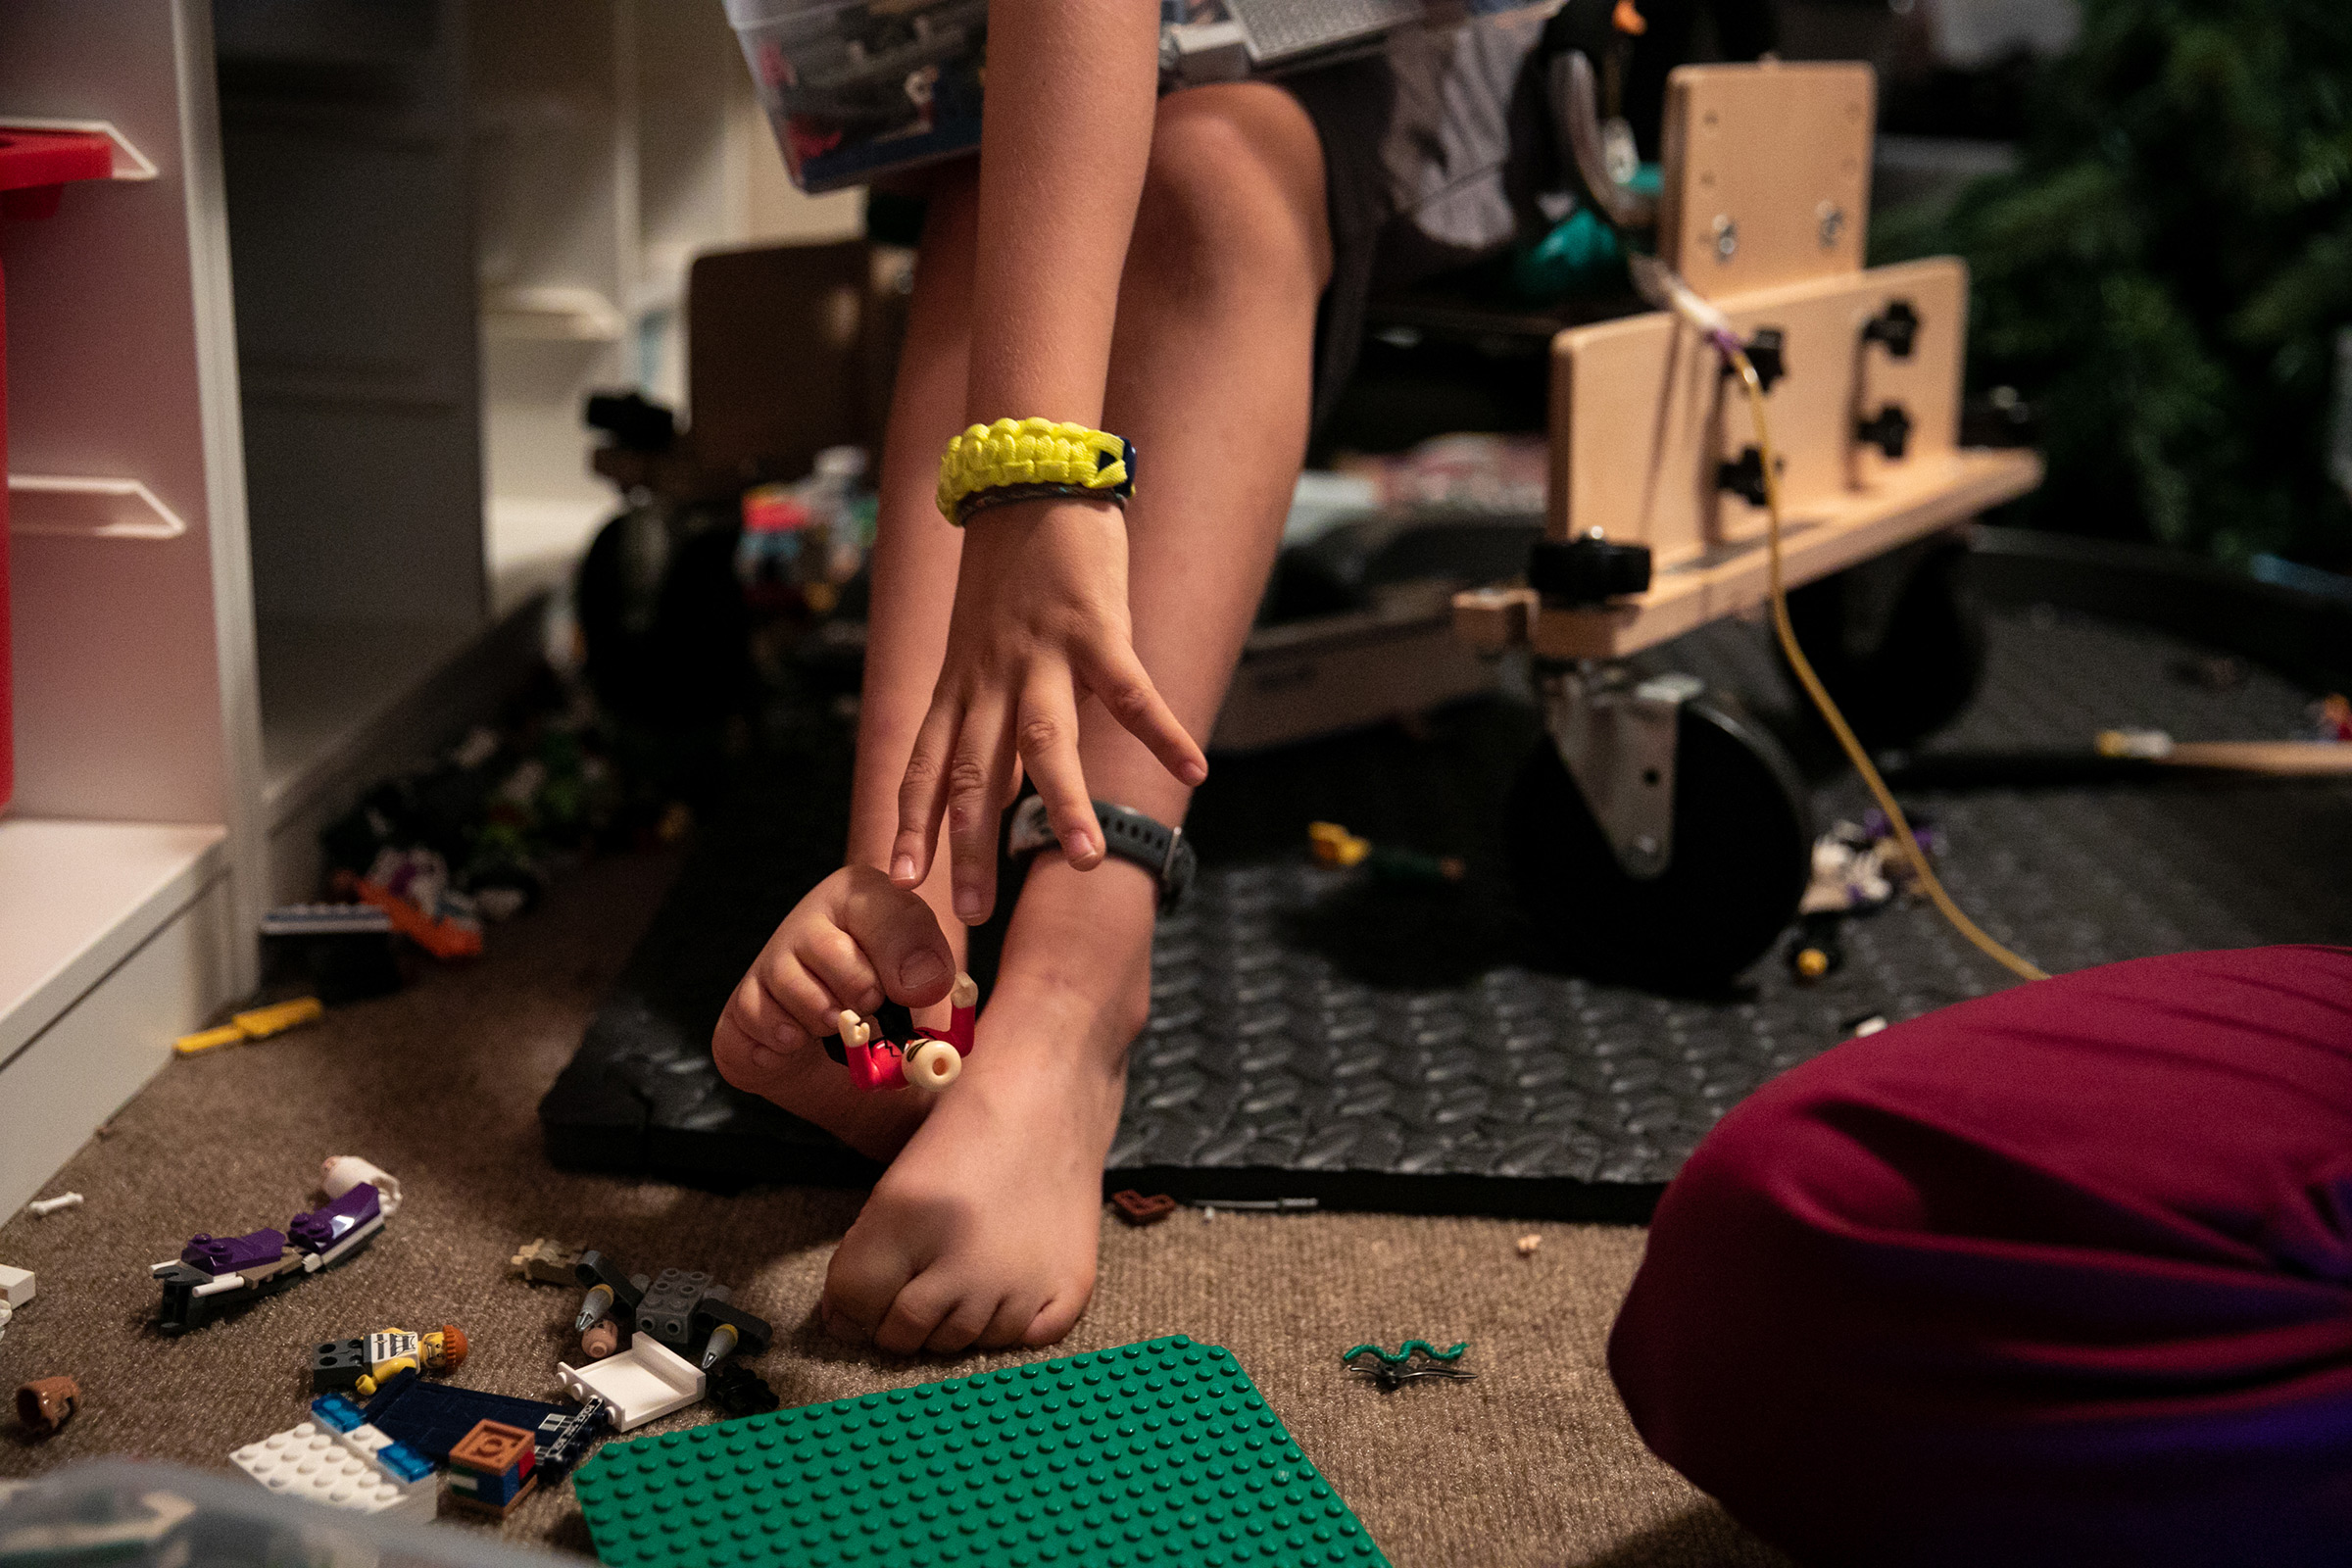 Braden uses his toes to reach for a LEGO on a break inbetween physical therapy treatments.